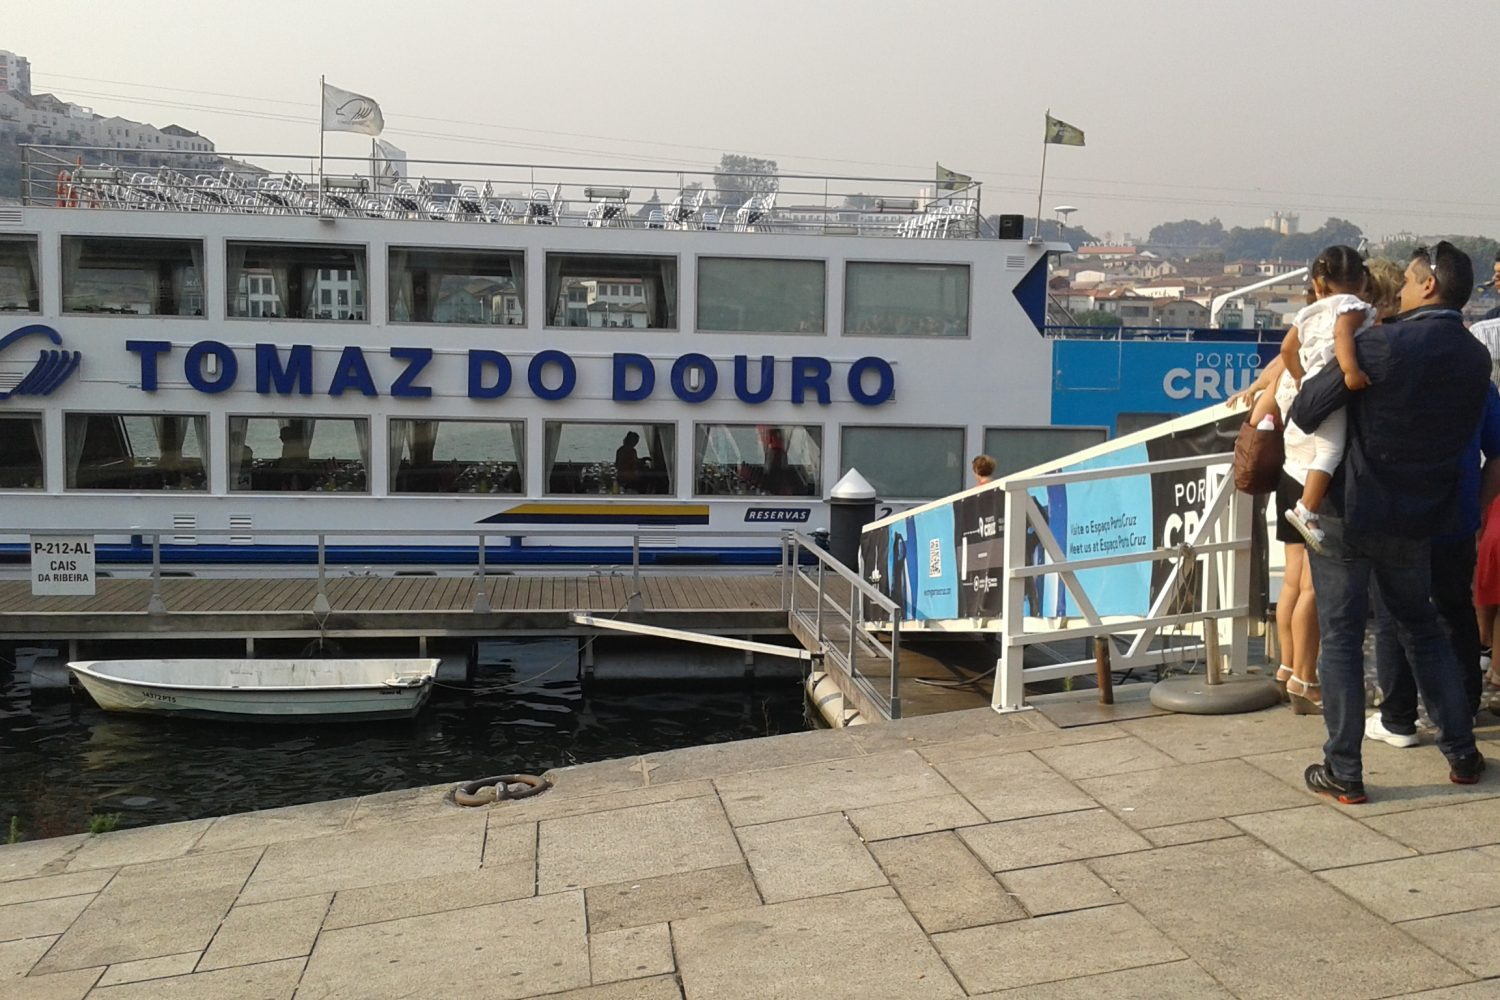 People taking place on the boat for a douro cruise